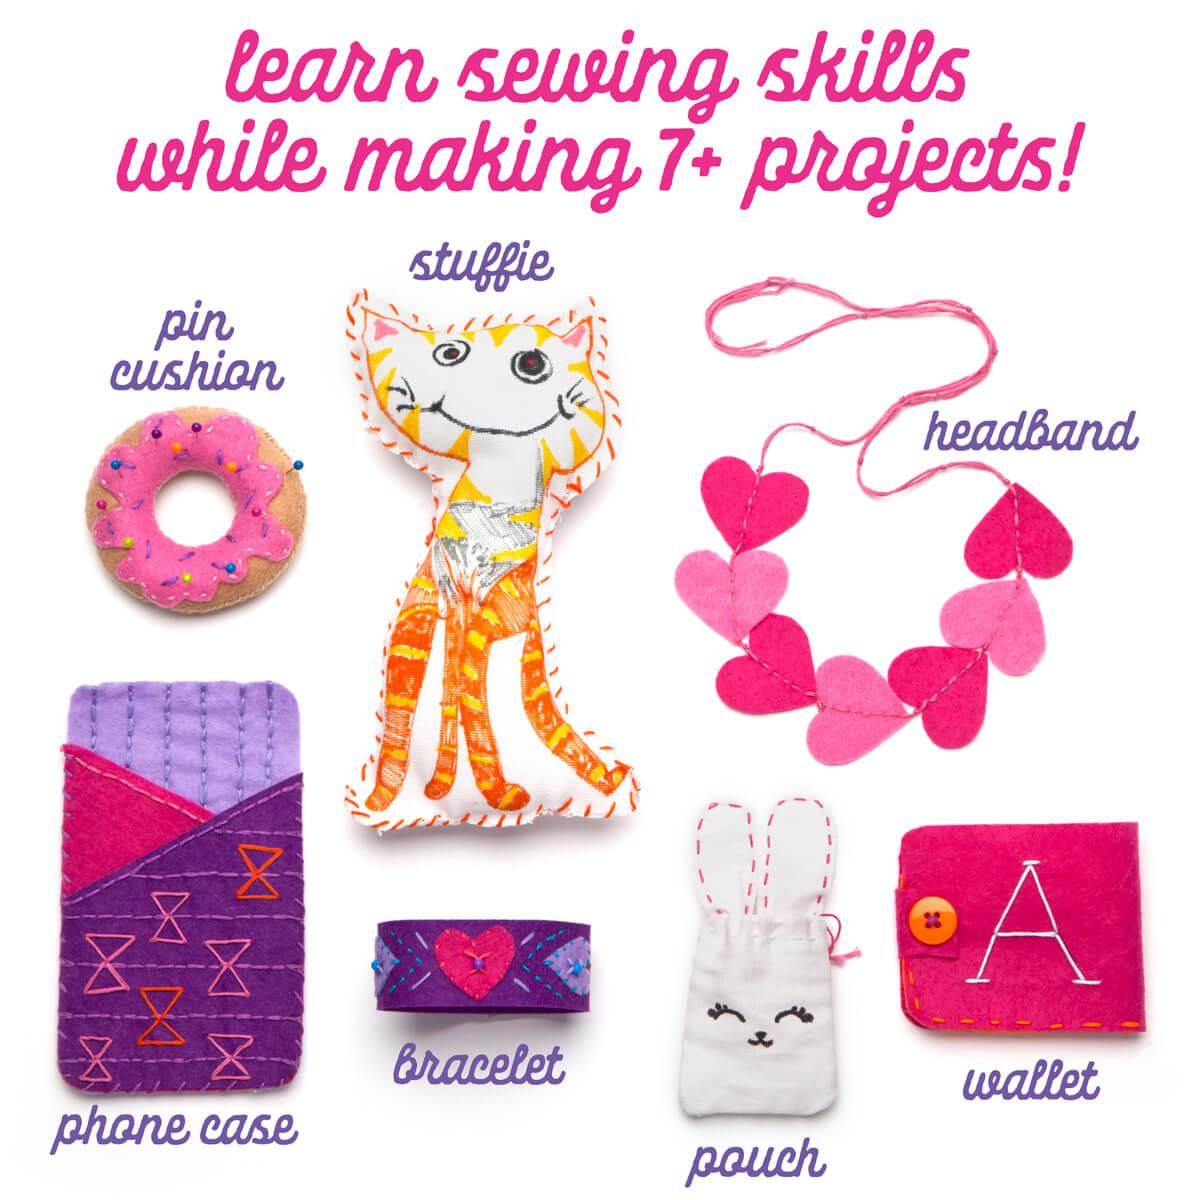 Learn to Sew Kit featured projects